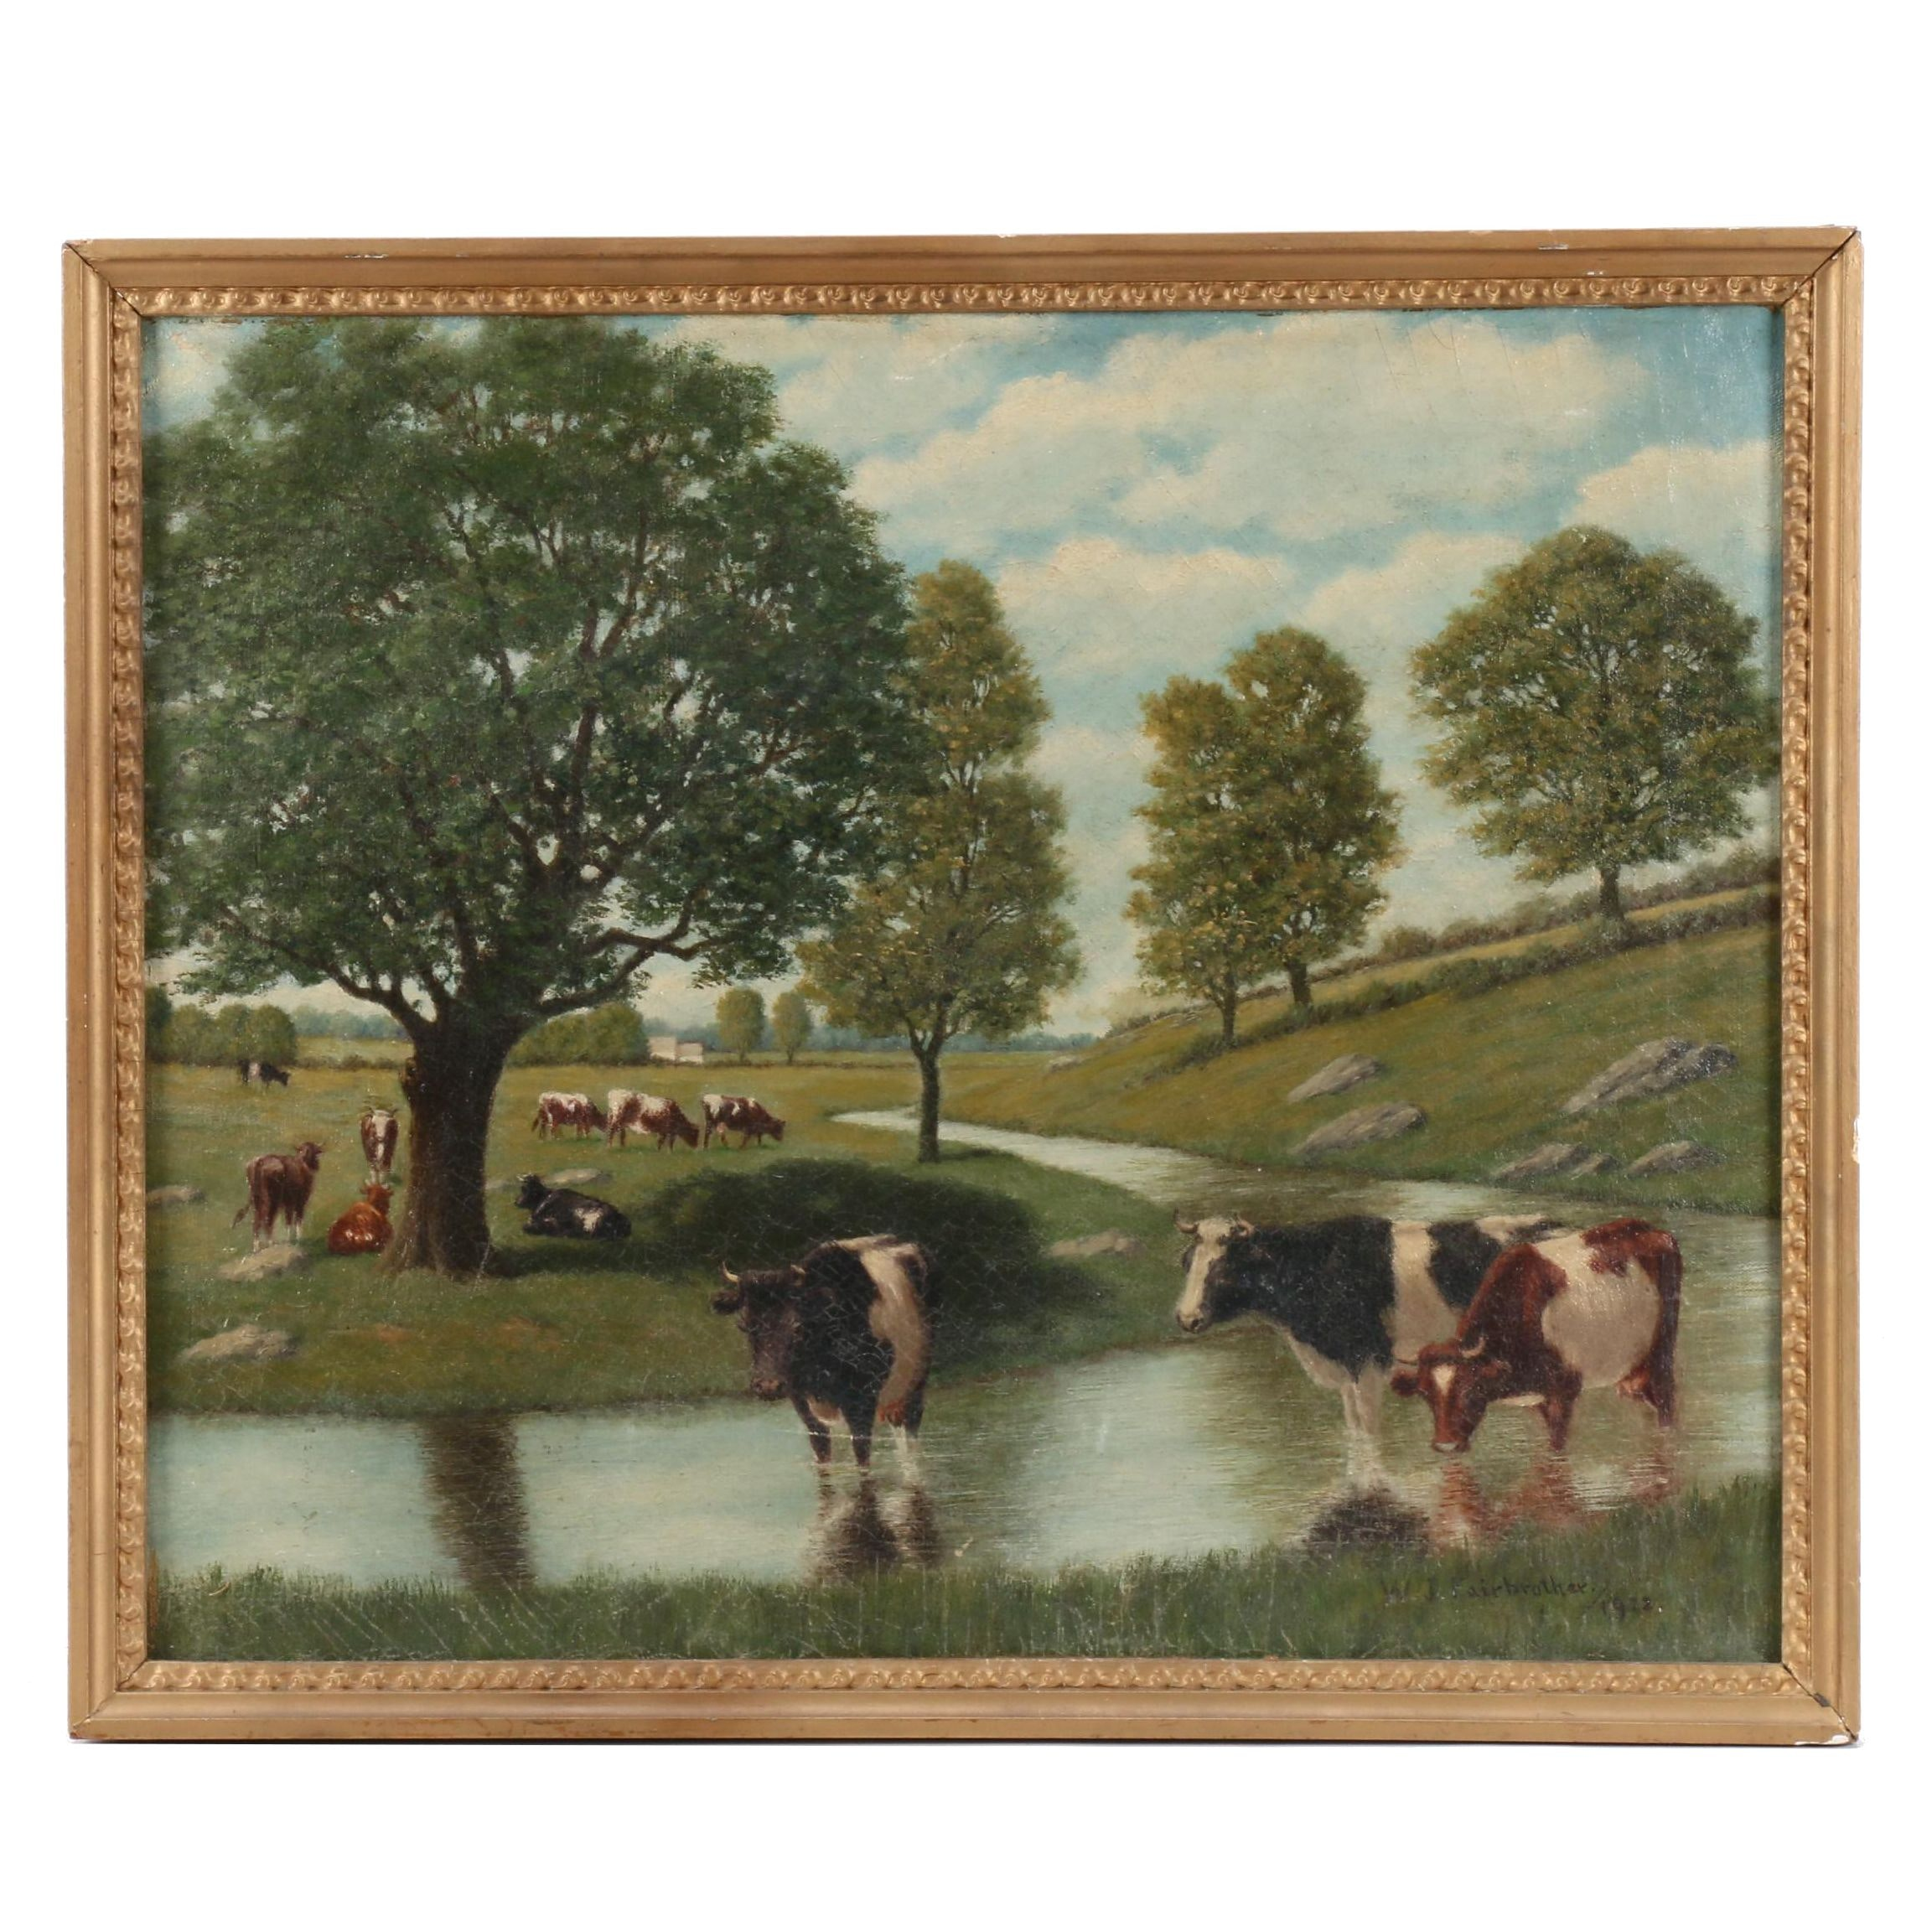 W.T. Fairbrother Oil Painting of Pastoral Scene with Cows